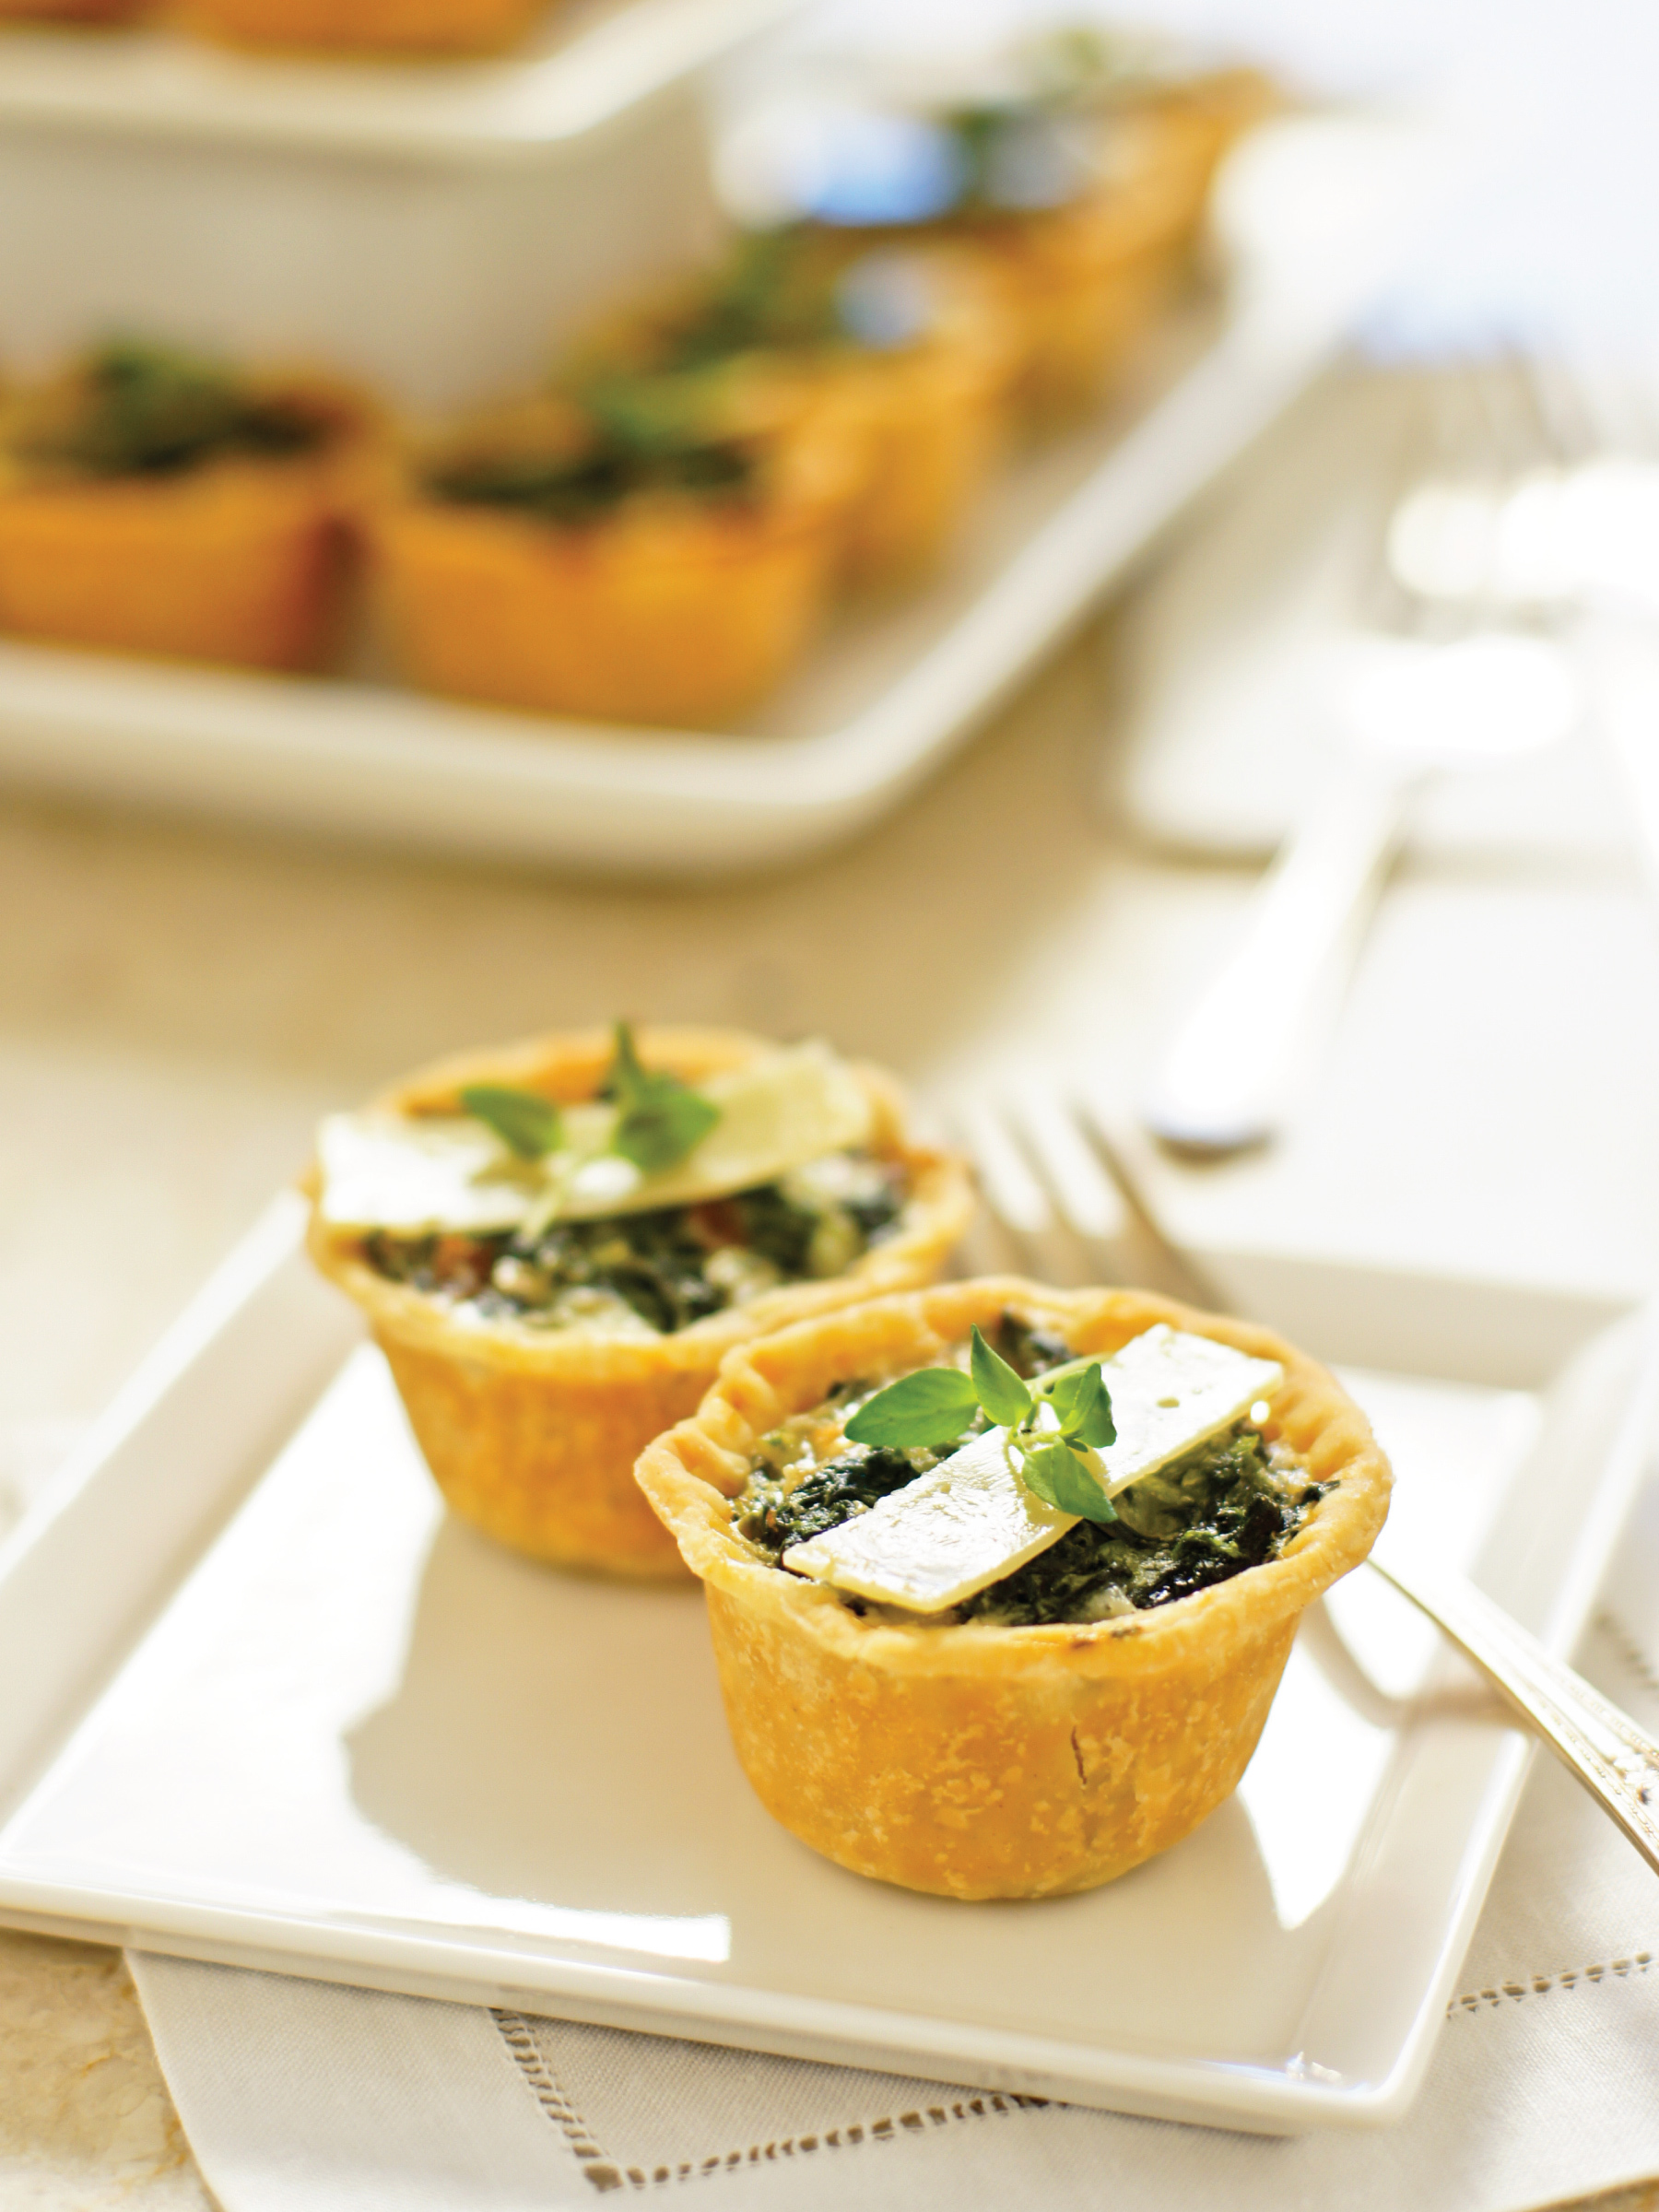 Mini Quiche Florentine by Sam Henderson of Today's Nest for HGTV